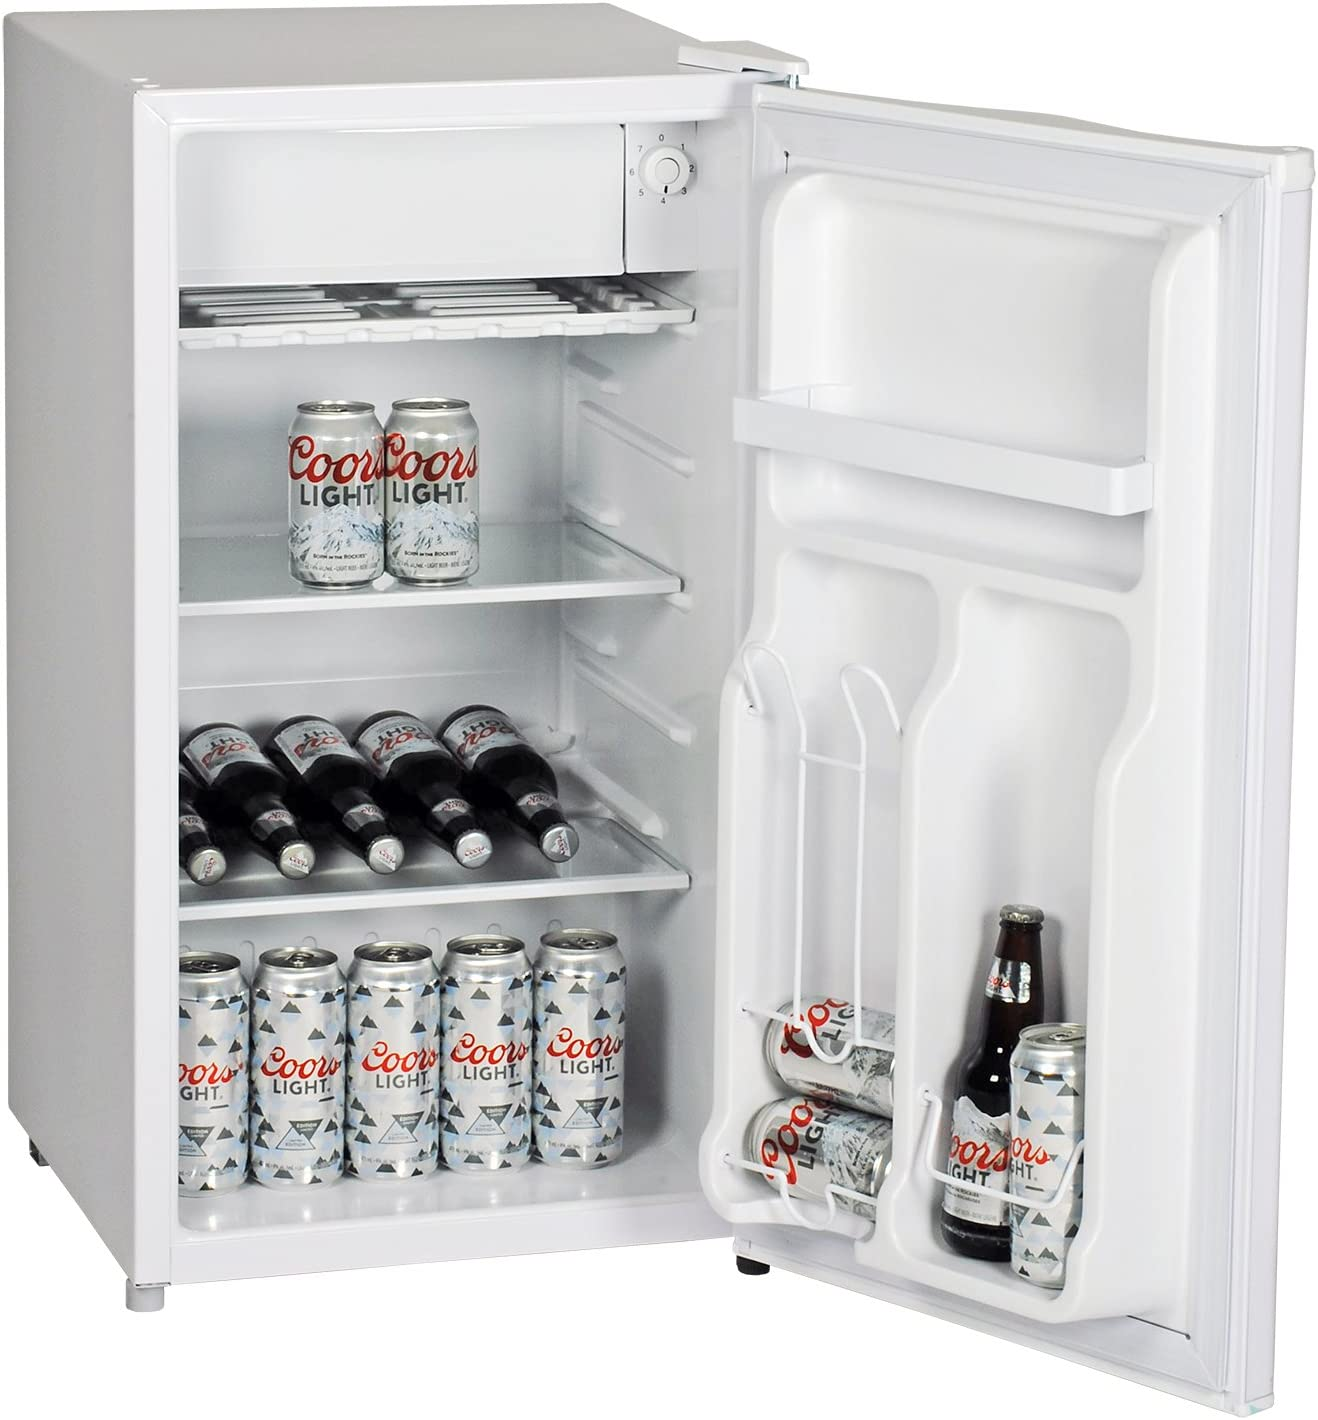 Coors Light Compact Fridge 90L 71xBVghhIqLSL1500_